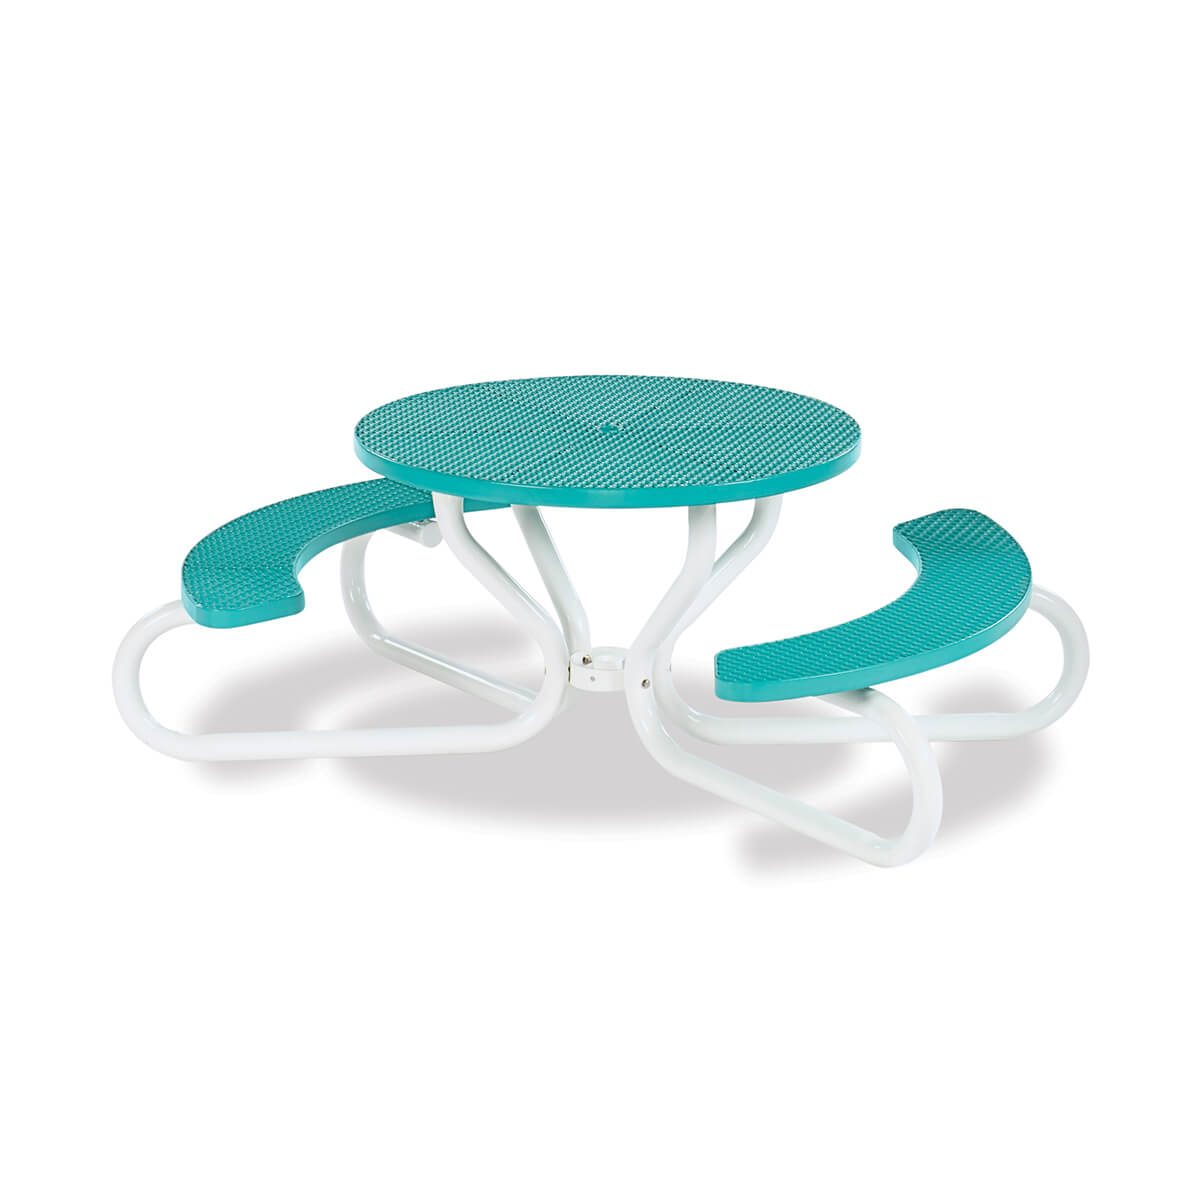 _0000s_0028_Signature series 42 round table with concave seating